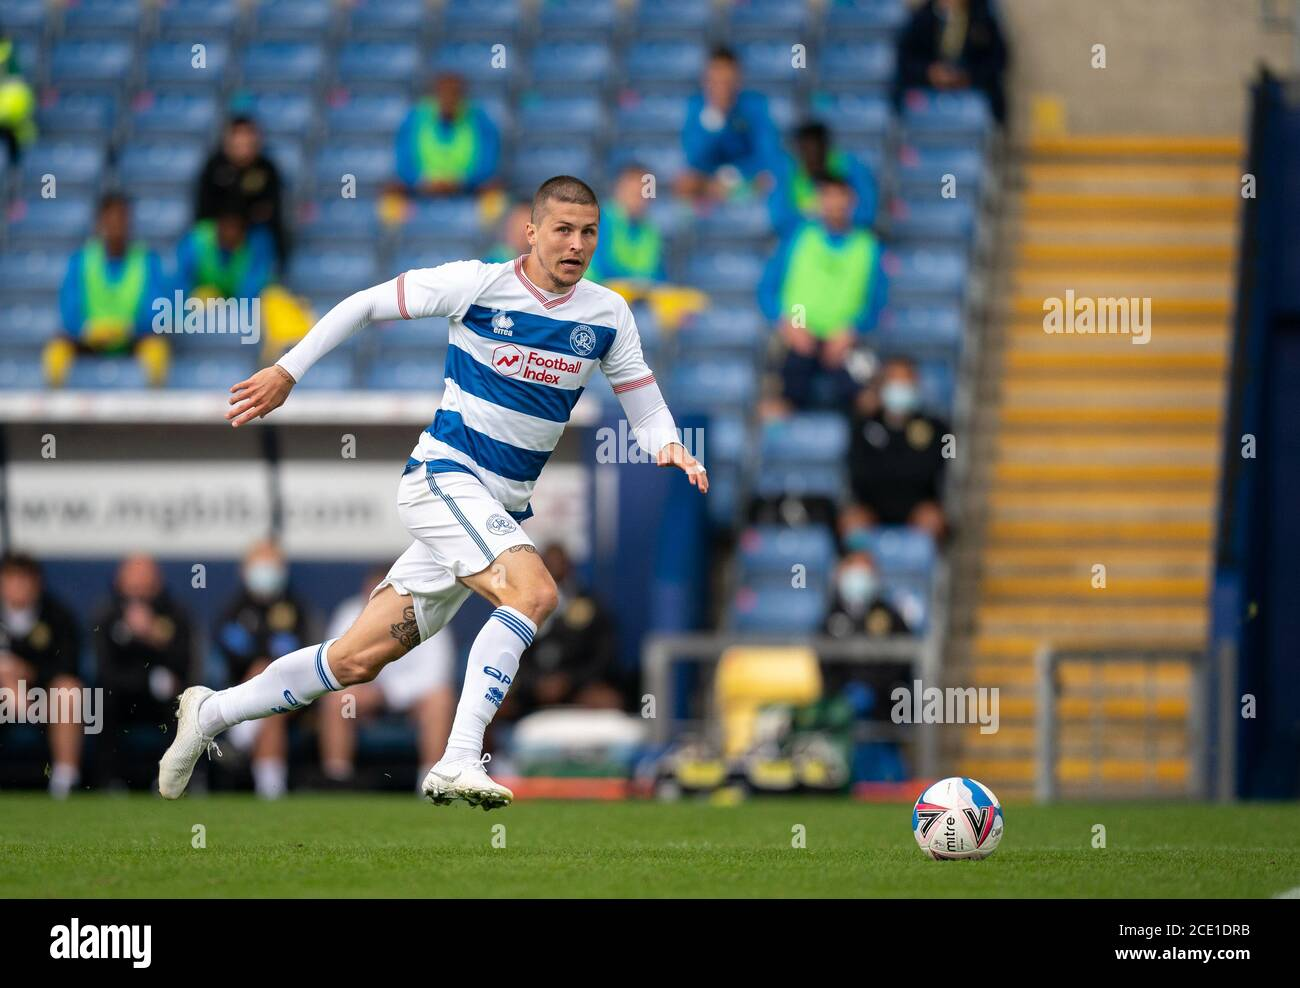 Oxford, UK. 29th Aug, 2020. Lyndon Dykes of QPR during the 2020/21 behind closed doors Pre Season Friendly match between Oxford United and Queens Park Rangers at the Kassam Stadium, Oxford, England on 29 August 2020. Photo by Andy Rowland. Credit: PRiME Media Images/Alamy Live News Stock Photo